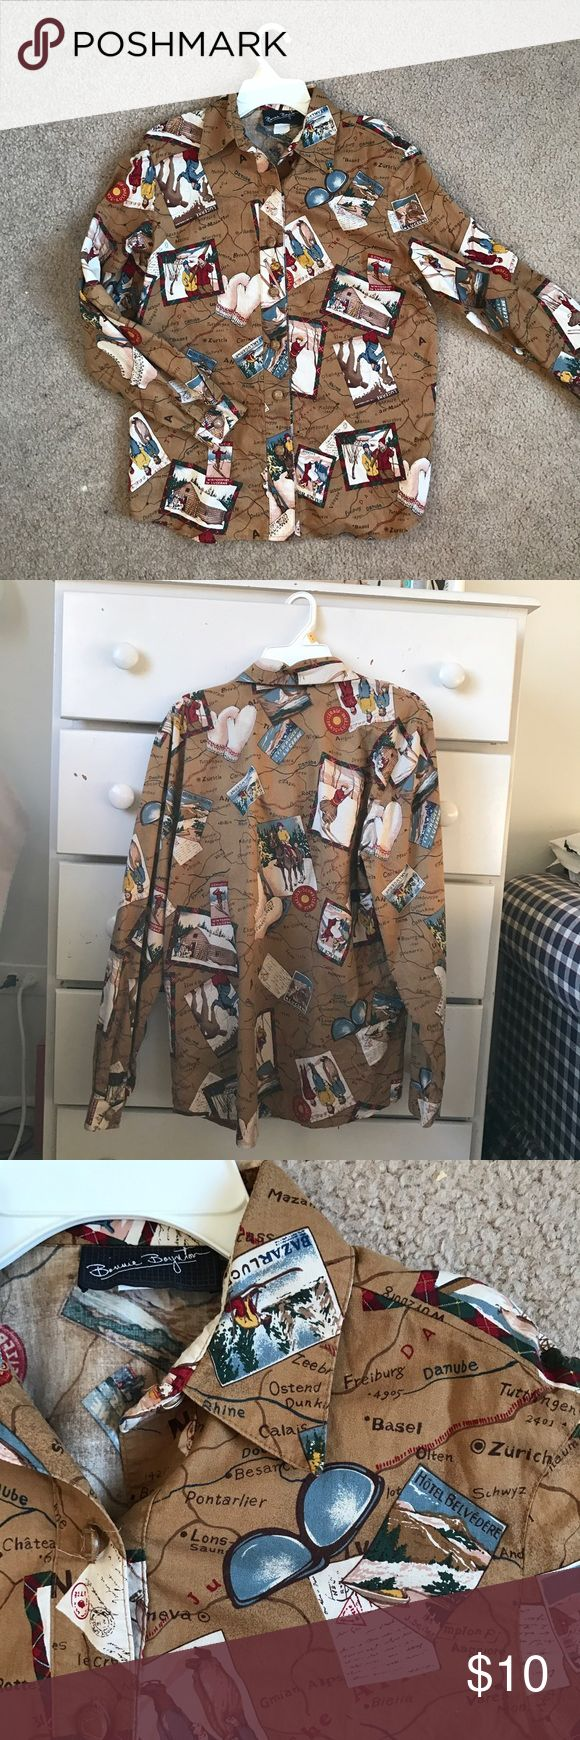 Unique Vintage Ski Map Button Down Shirt Condition is like new! Super cool cotton long sleeved Button town featuring alpine ski images overplayed on a map. Size women's x-small. Vintage Tops Button Down Shirts